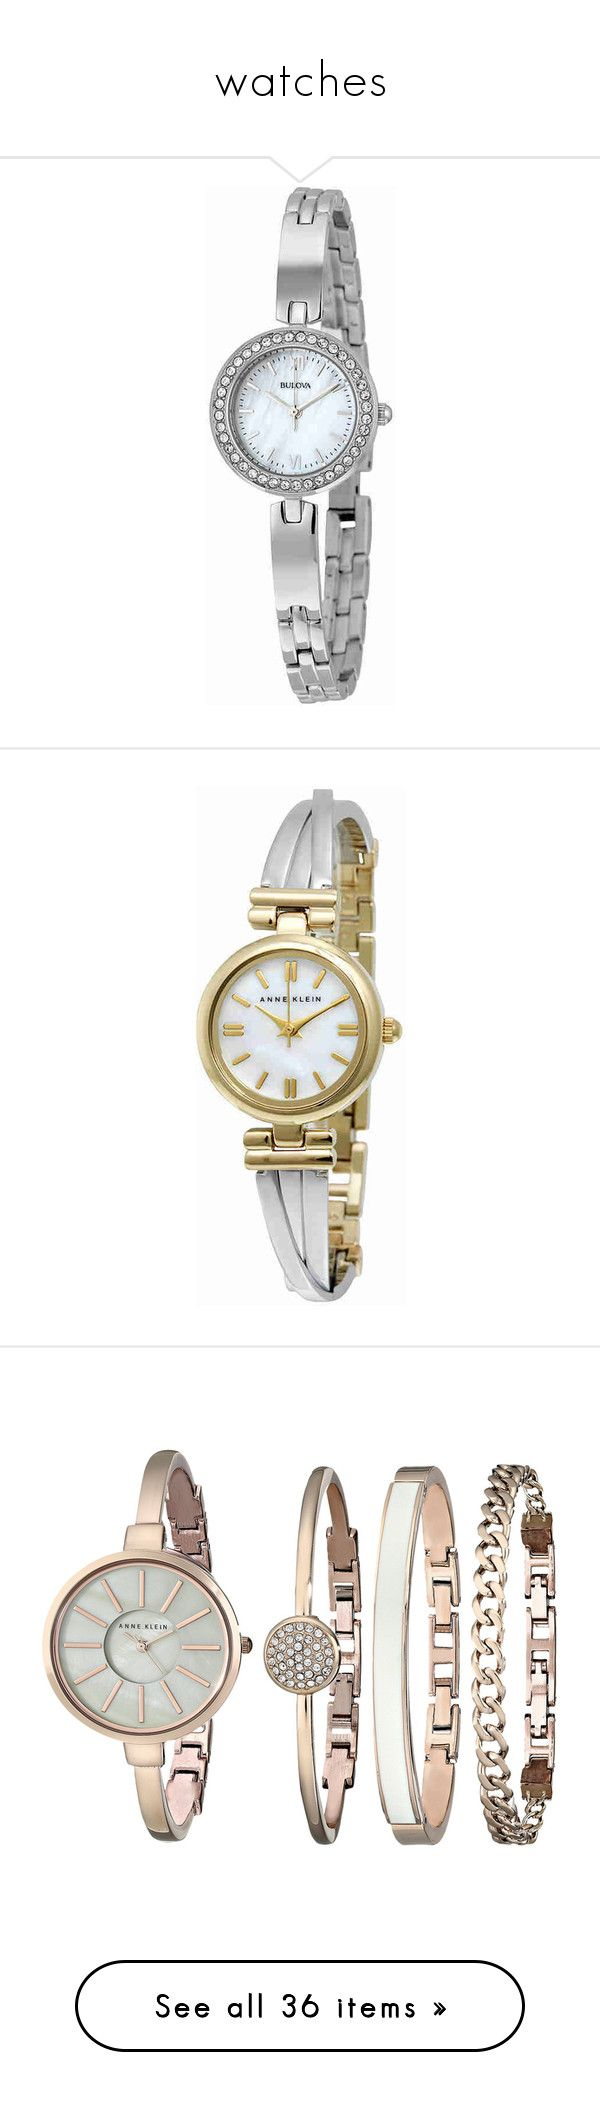 """""""watches"""" by lustydame ❤ liked on Polyvore featuring jewelry, watches, roman numeral watches, white crown, water resistant watches, dress watch, crown jewelry, stainless steel wrist watch, anne klein jewelry and stainless steel jewelry"""